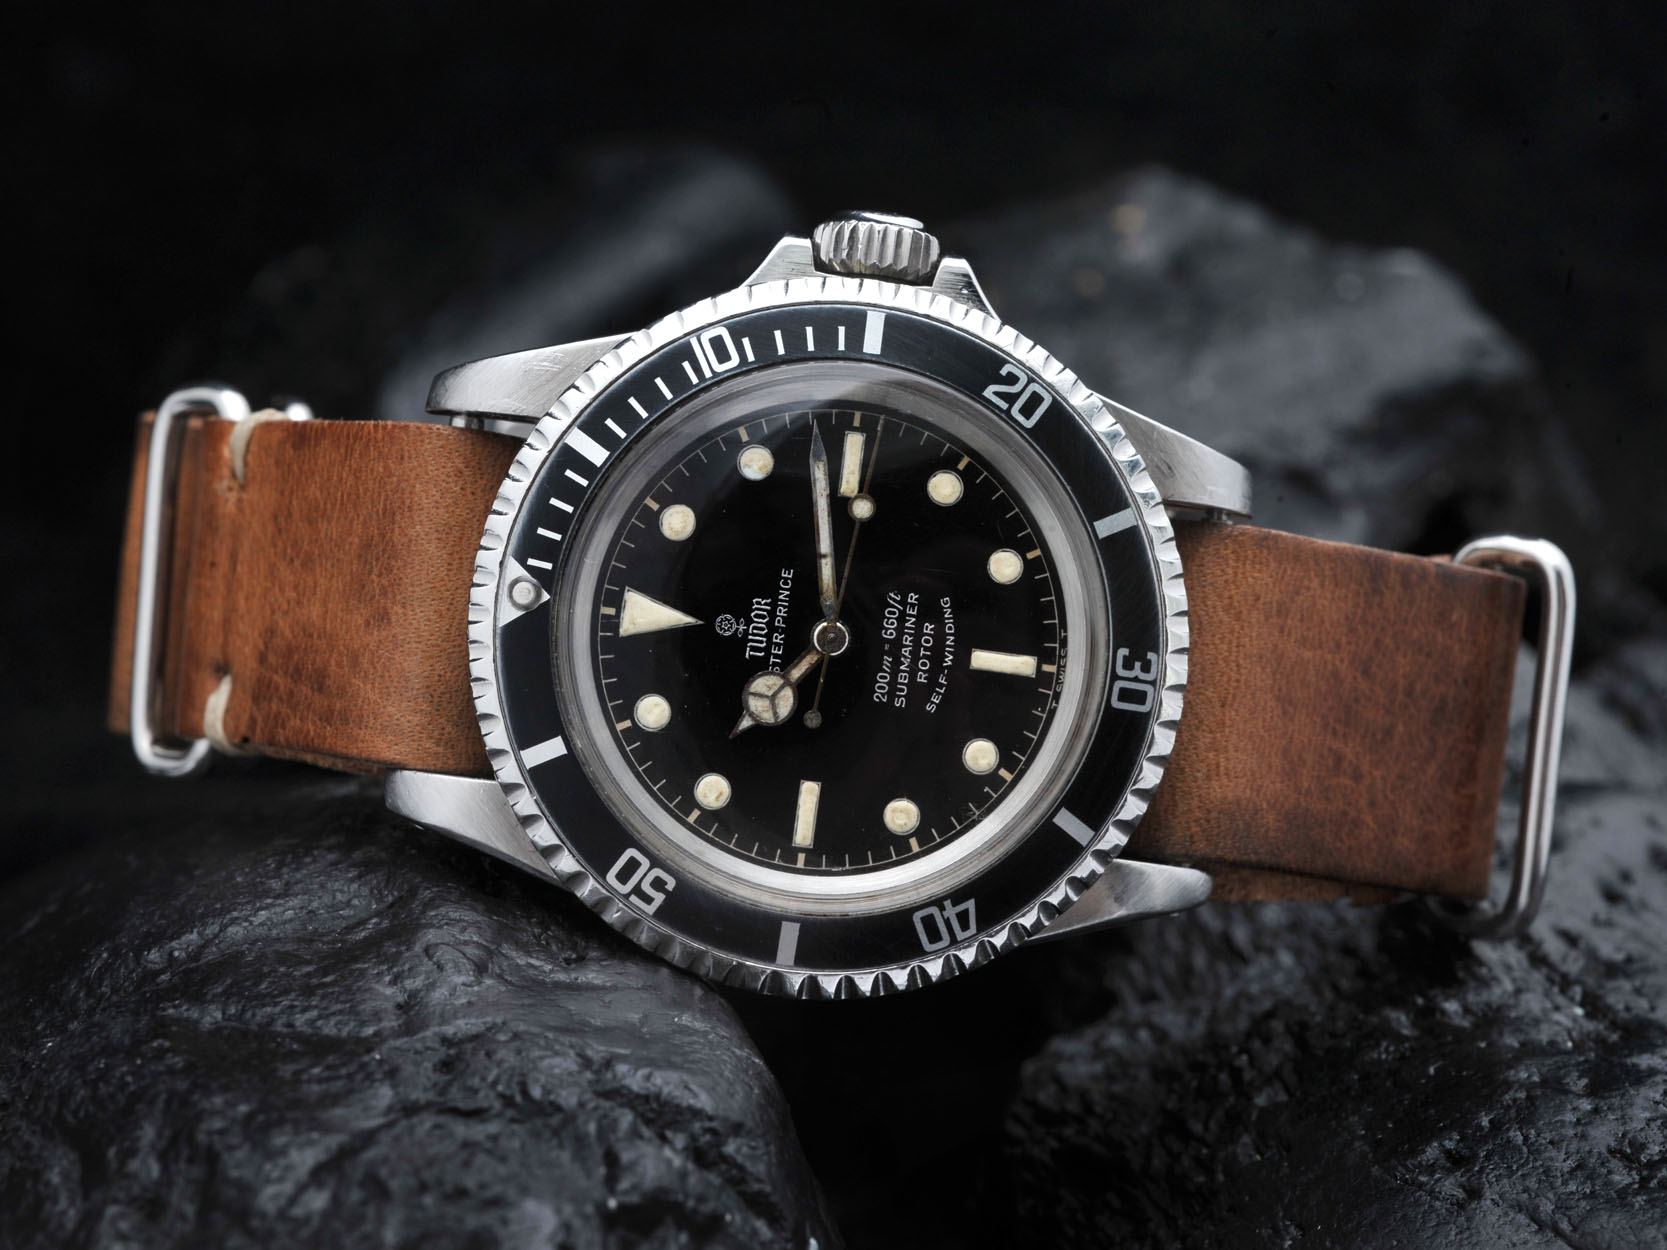 B&S Tudor W-23 7928 Ross 15